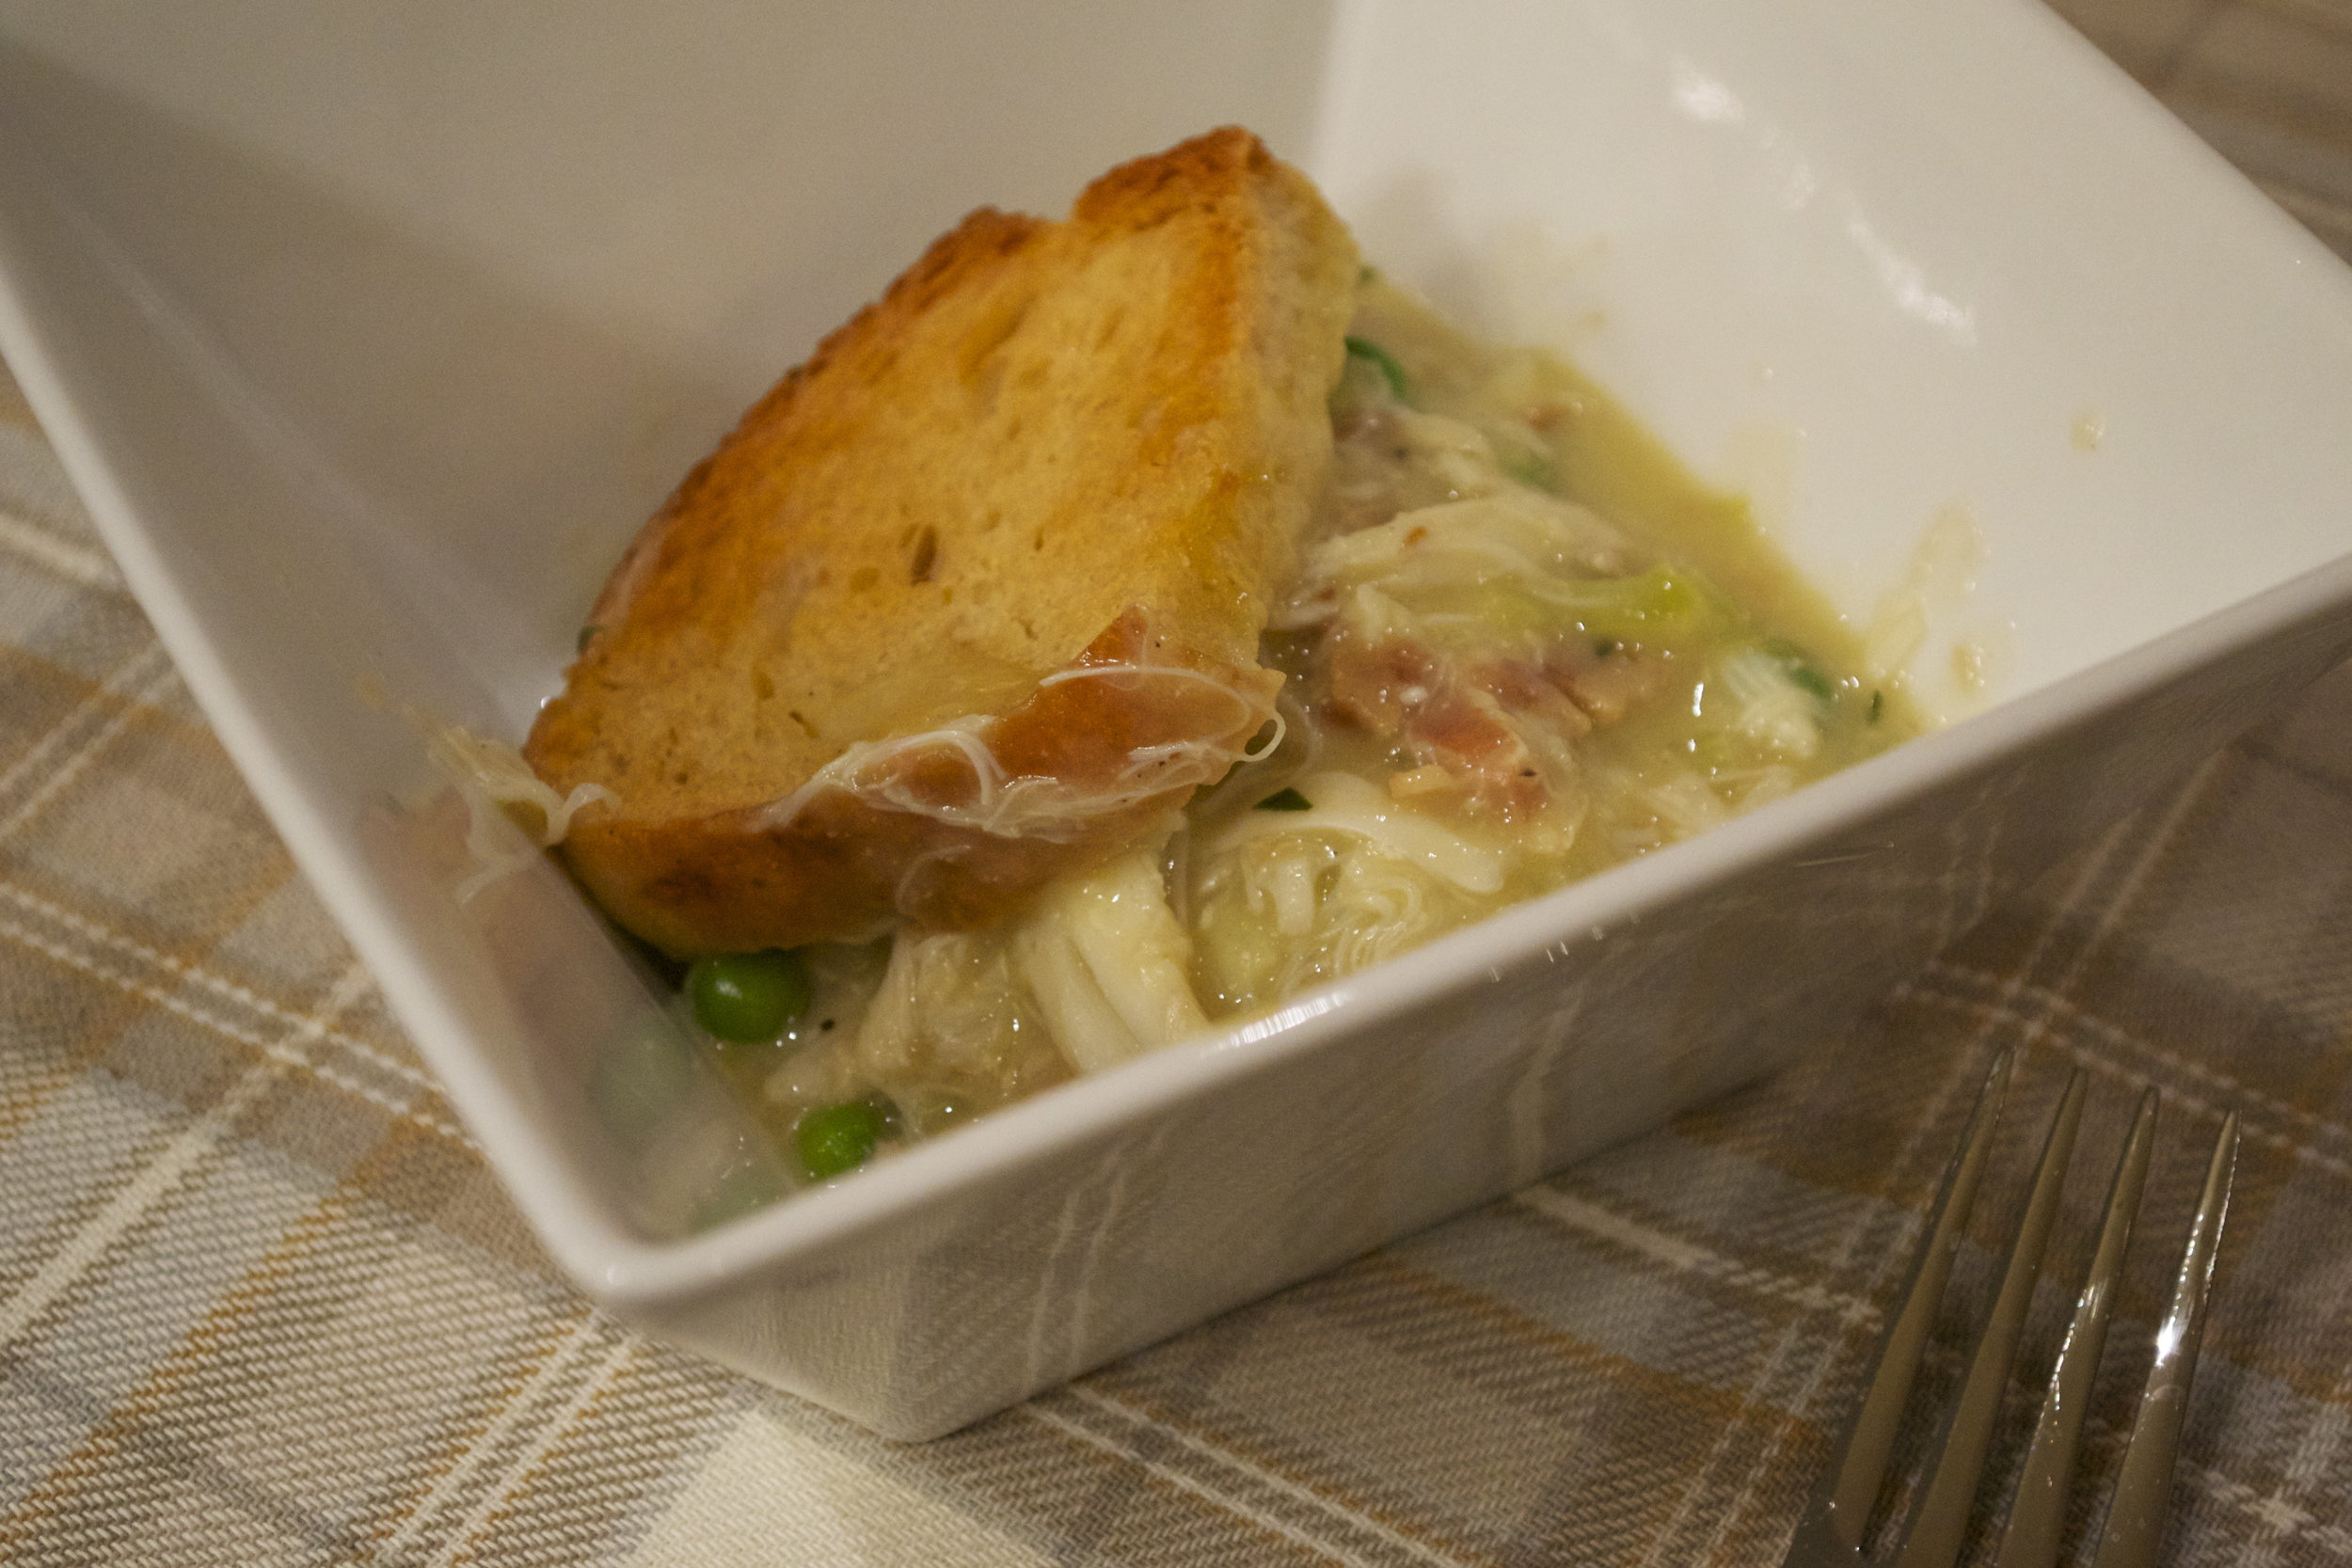 A bowlful of Crab, Bacon and Leek Potpie